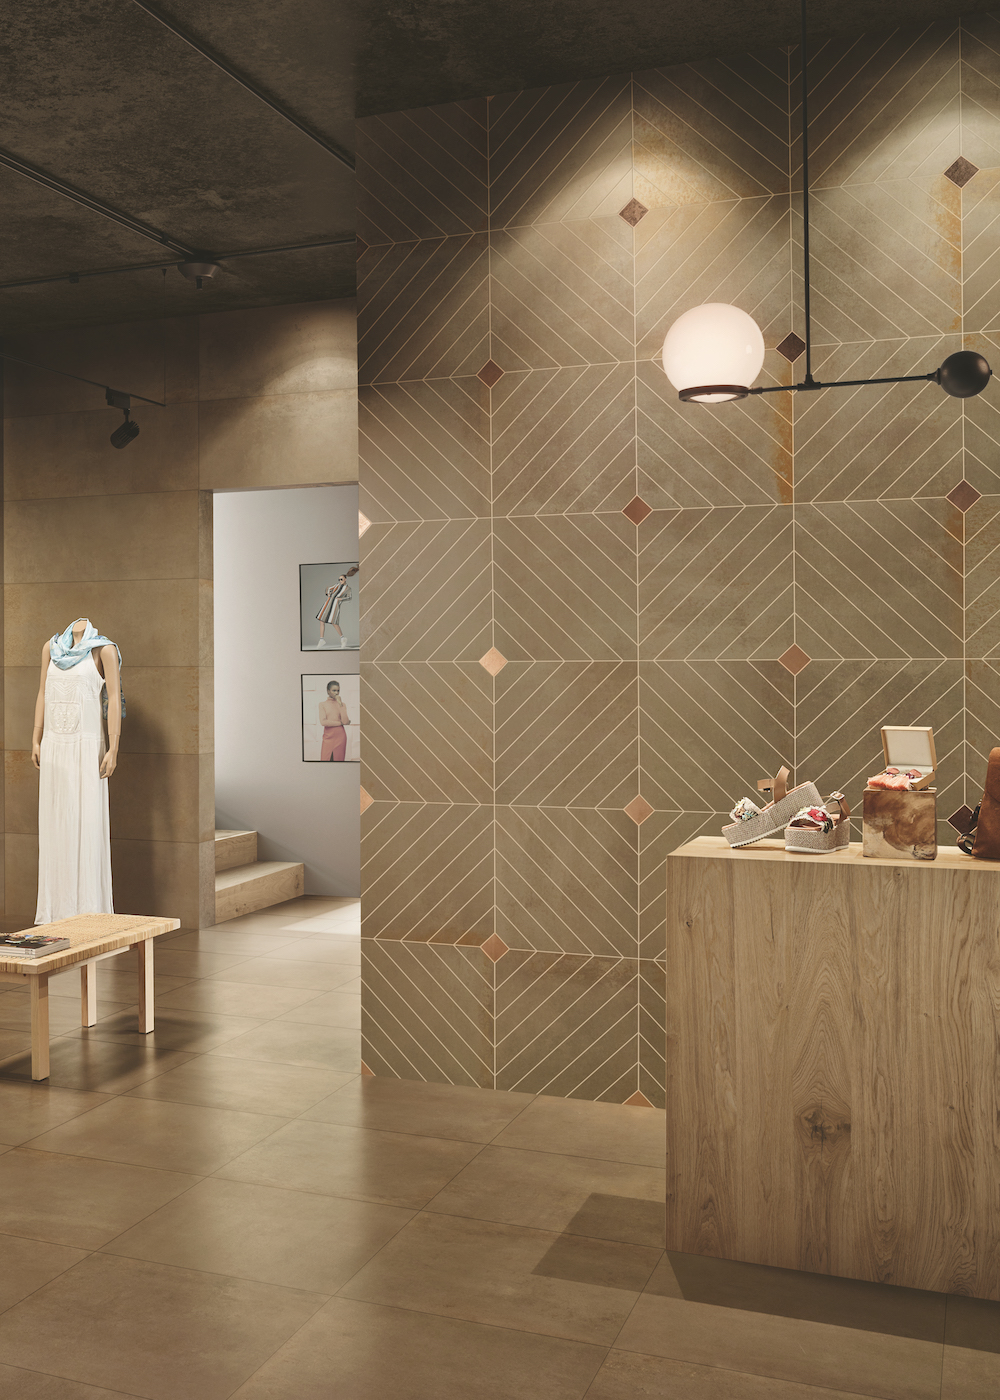 Image caption: The Metalic collection by CTD Architectural Tiles in retail setting